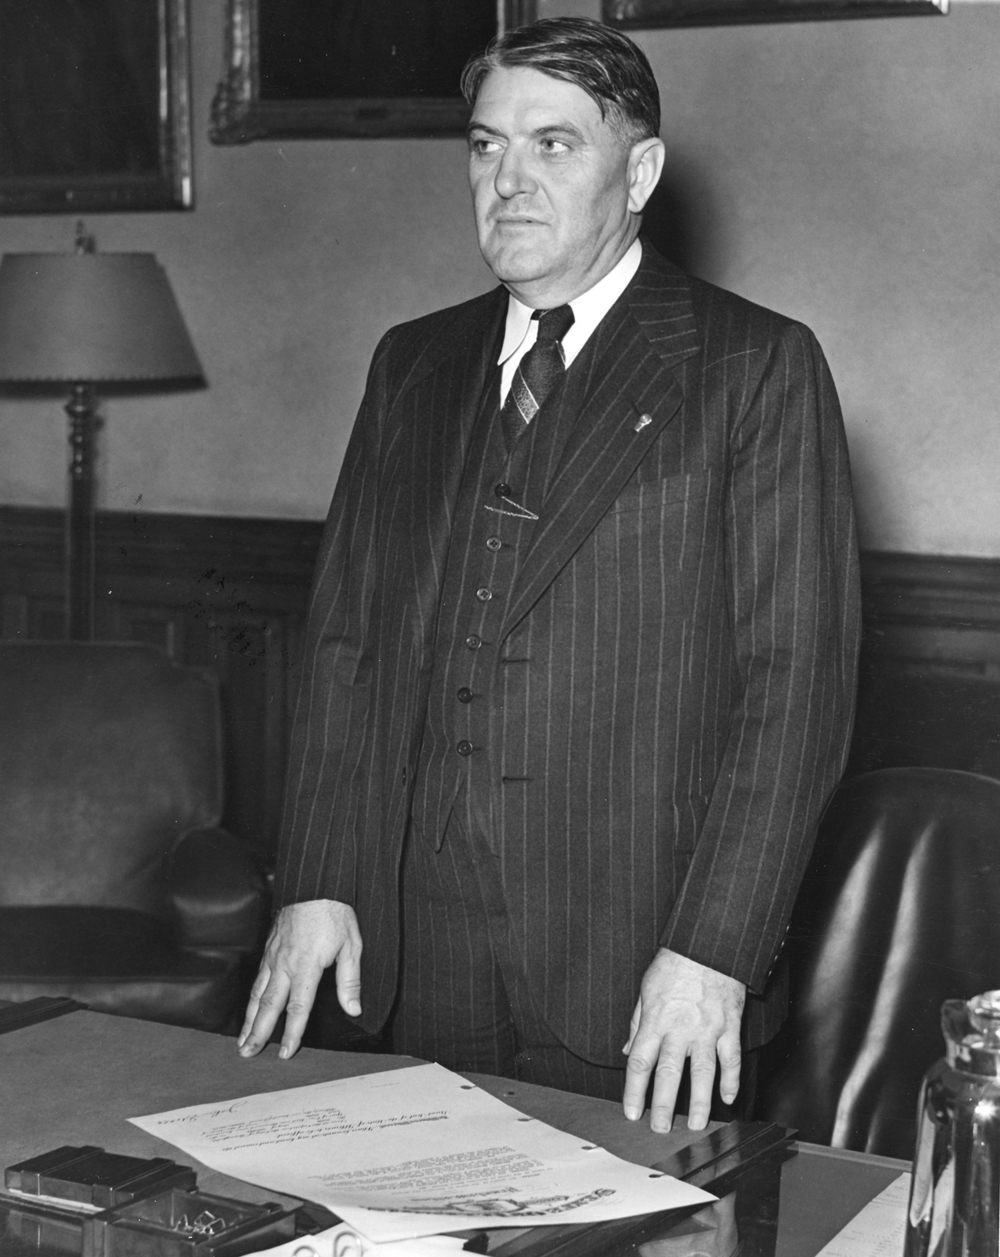 Gov. John Stelle after being sworn in Oct. 7, 1940 following the death of Gov. Henry Horner. File/The State Journal-Register